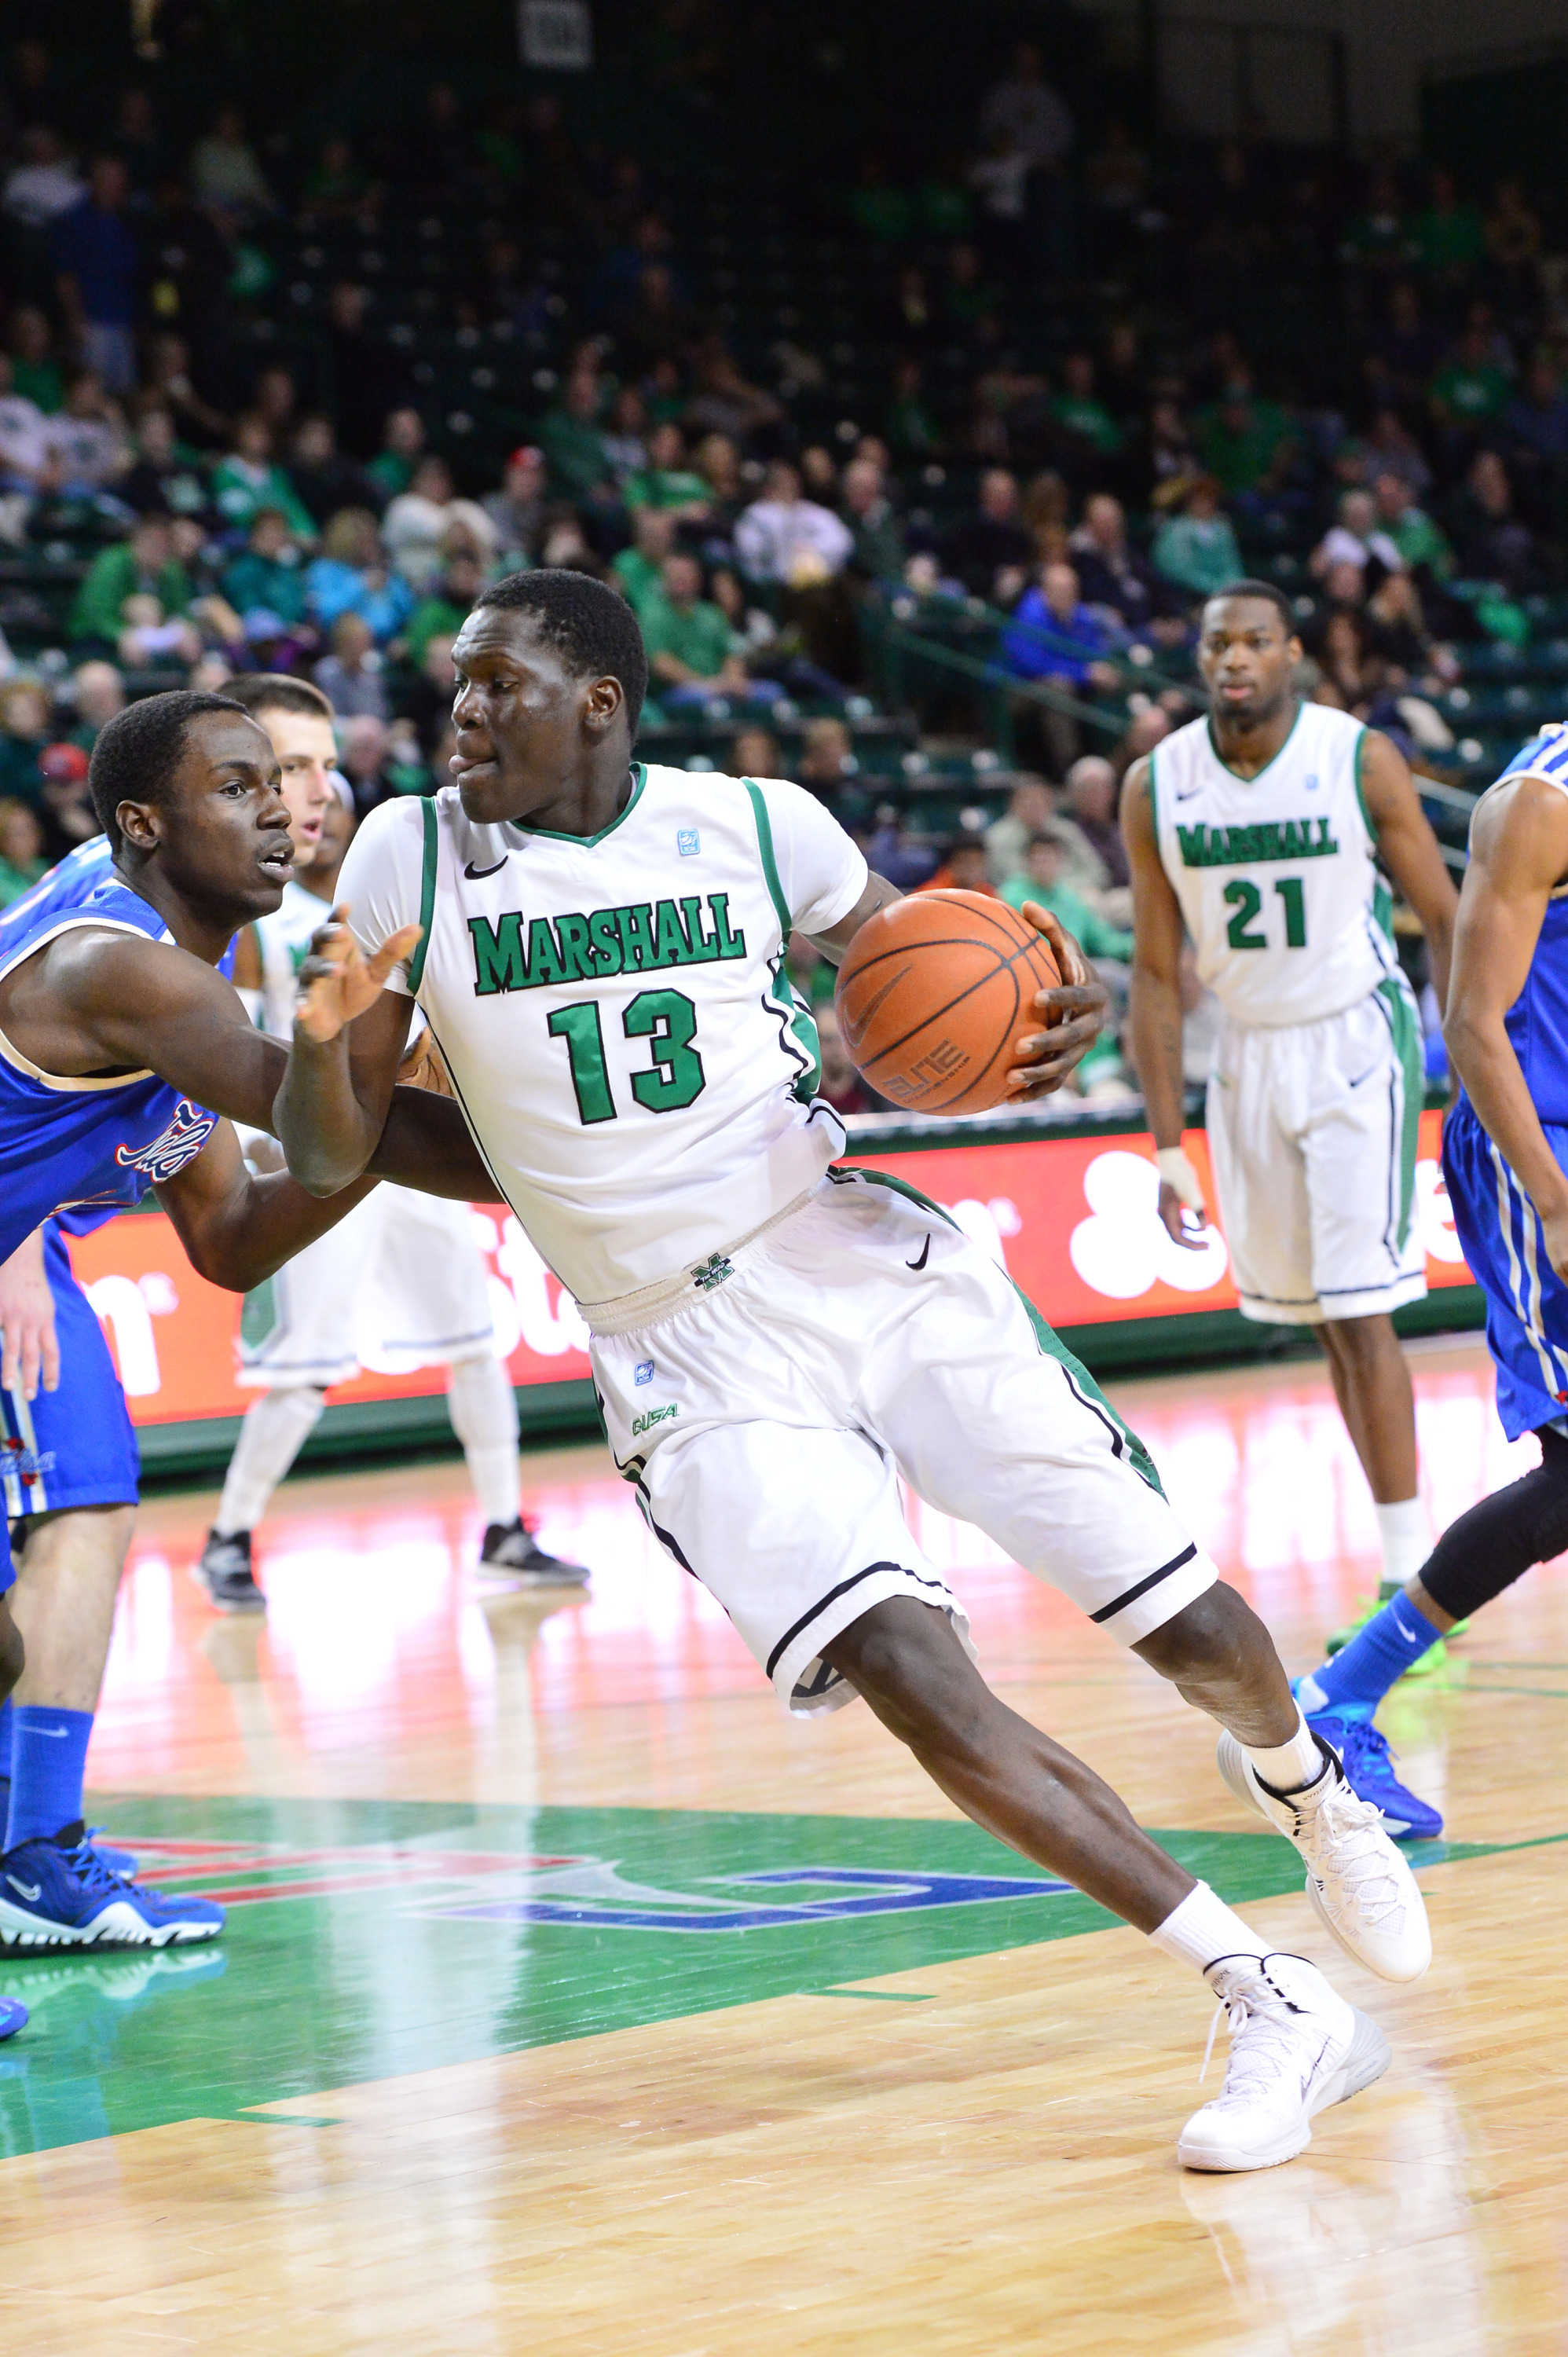 Cheikh Sane set a career high with 11 points on the afternoon.